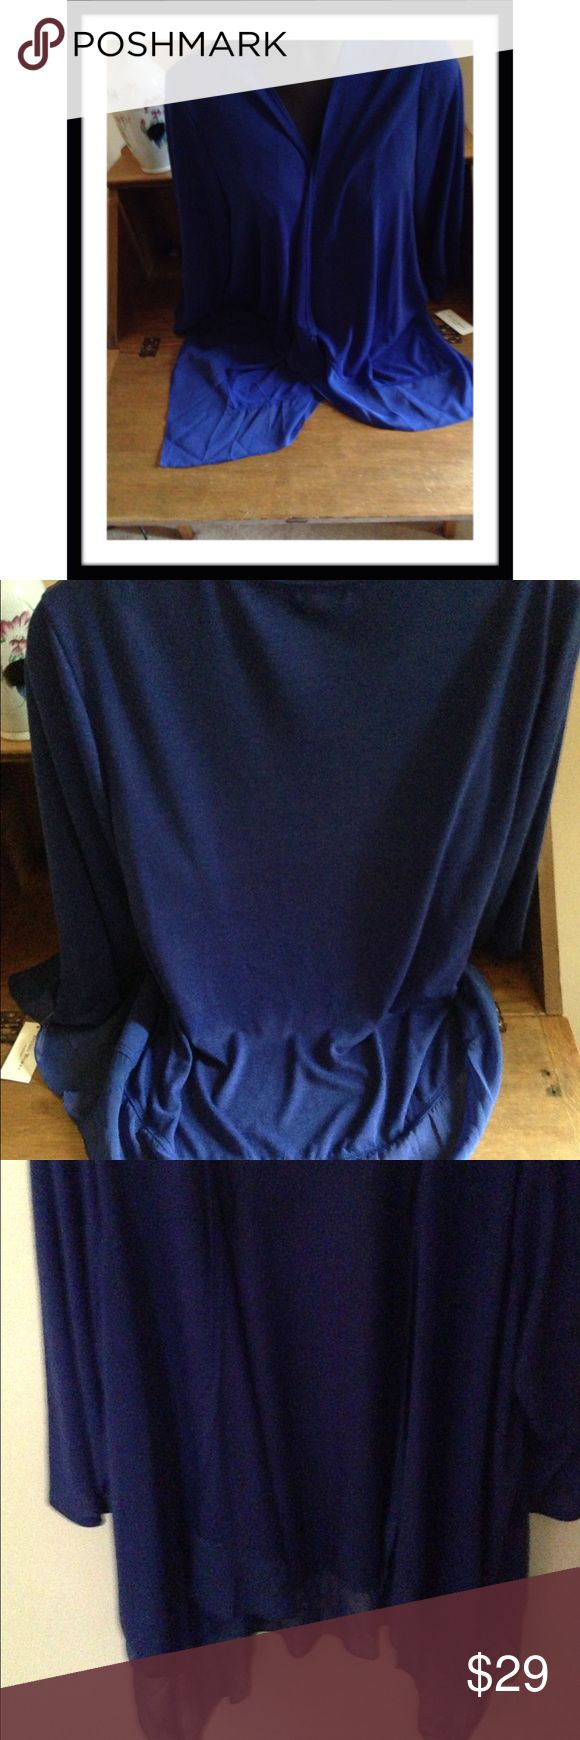 """ROYAL BLUE FLOUNCED COVER UP Studio Works brand 78% polyester, 18% rayon, 4% spandex top with 100% polyester frilly bottom hem, open front & 3/4 length sleeves. Underarm to underarm 25"""" & length 30"""" to bottom of sheer trim. Exquisite royal blue color!! Tops"""